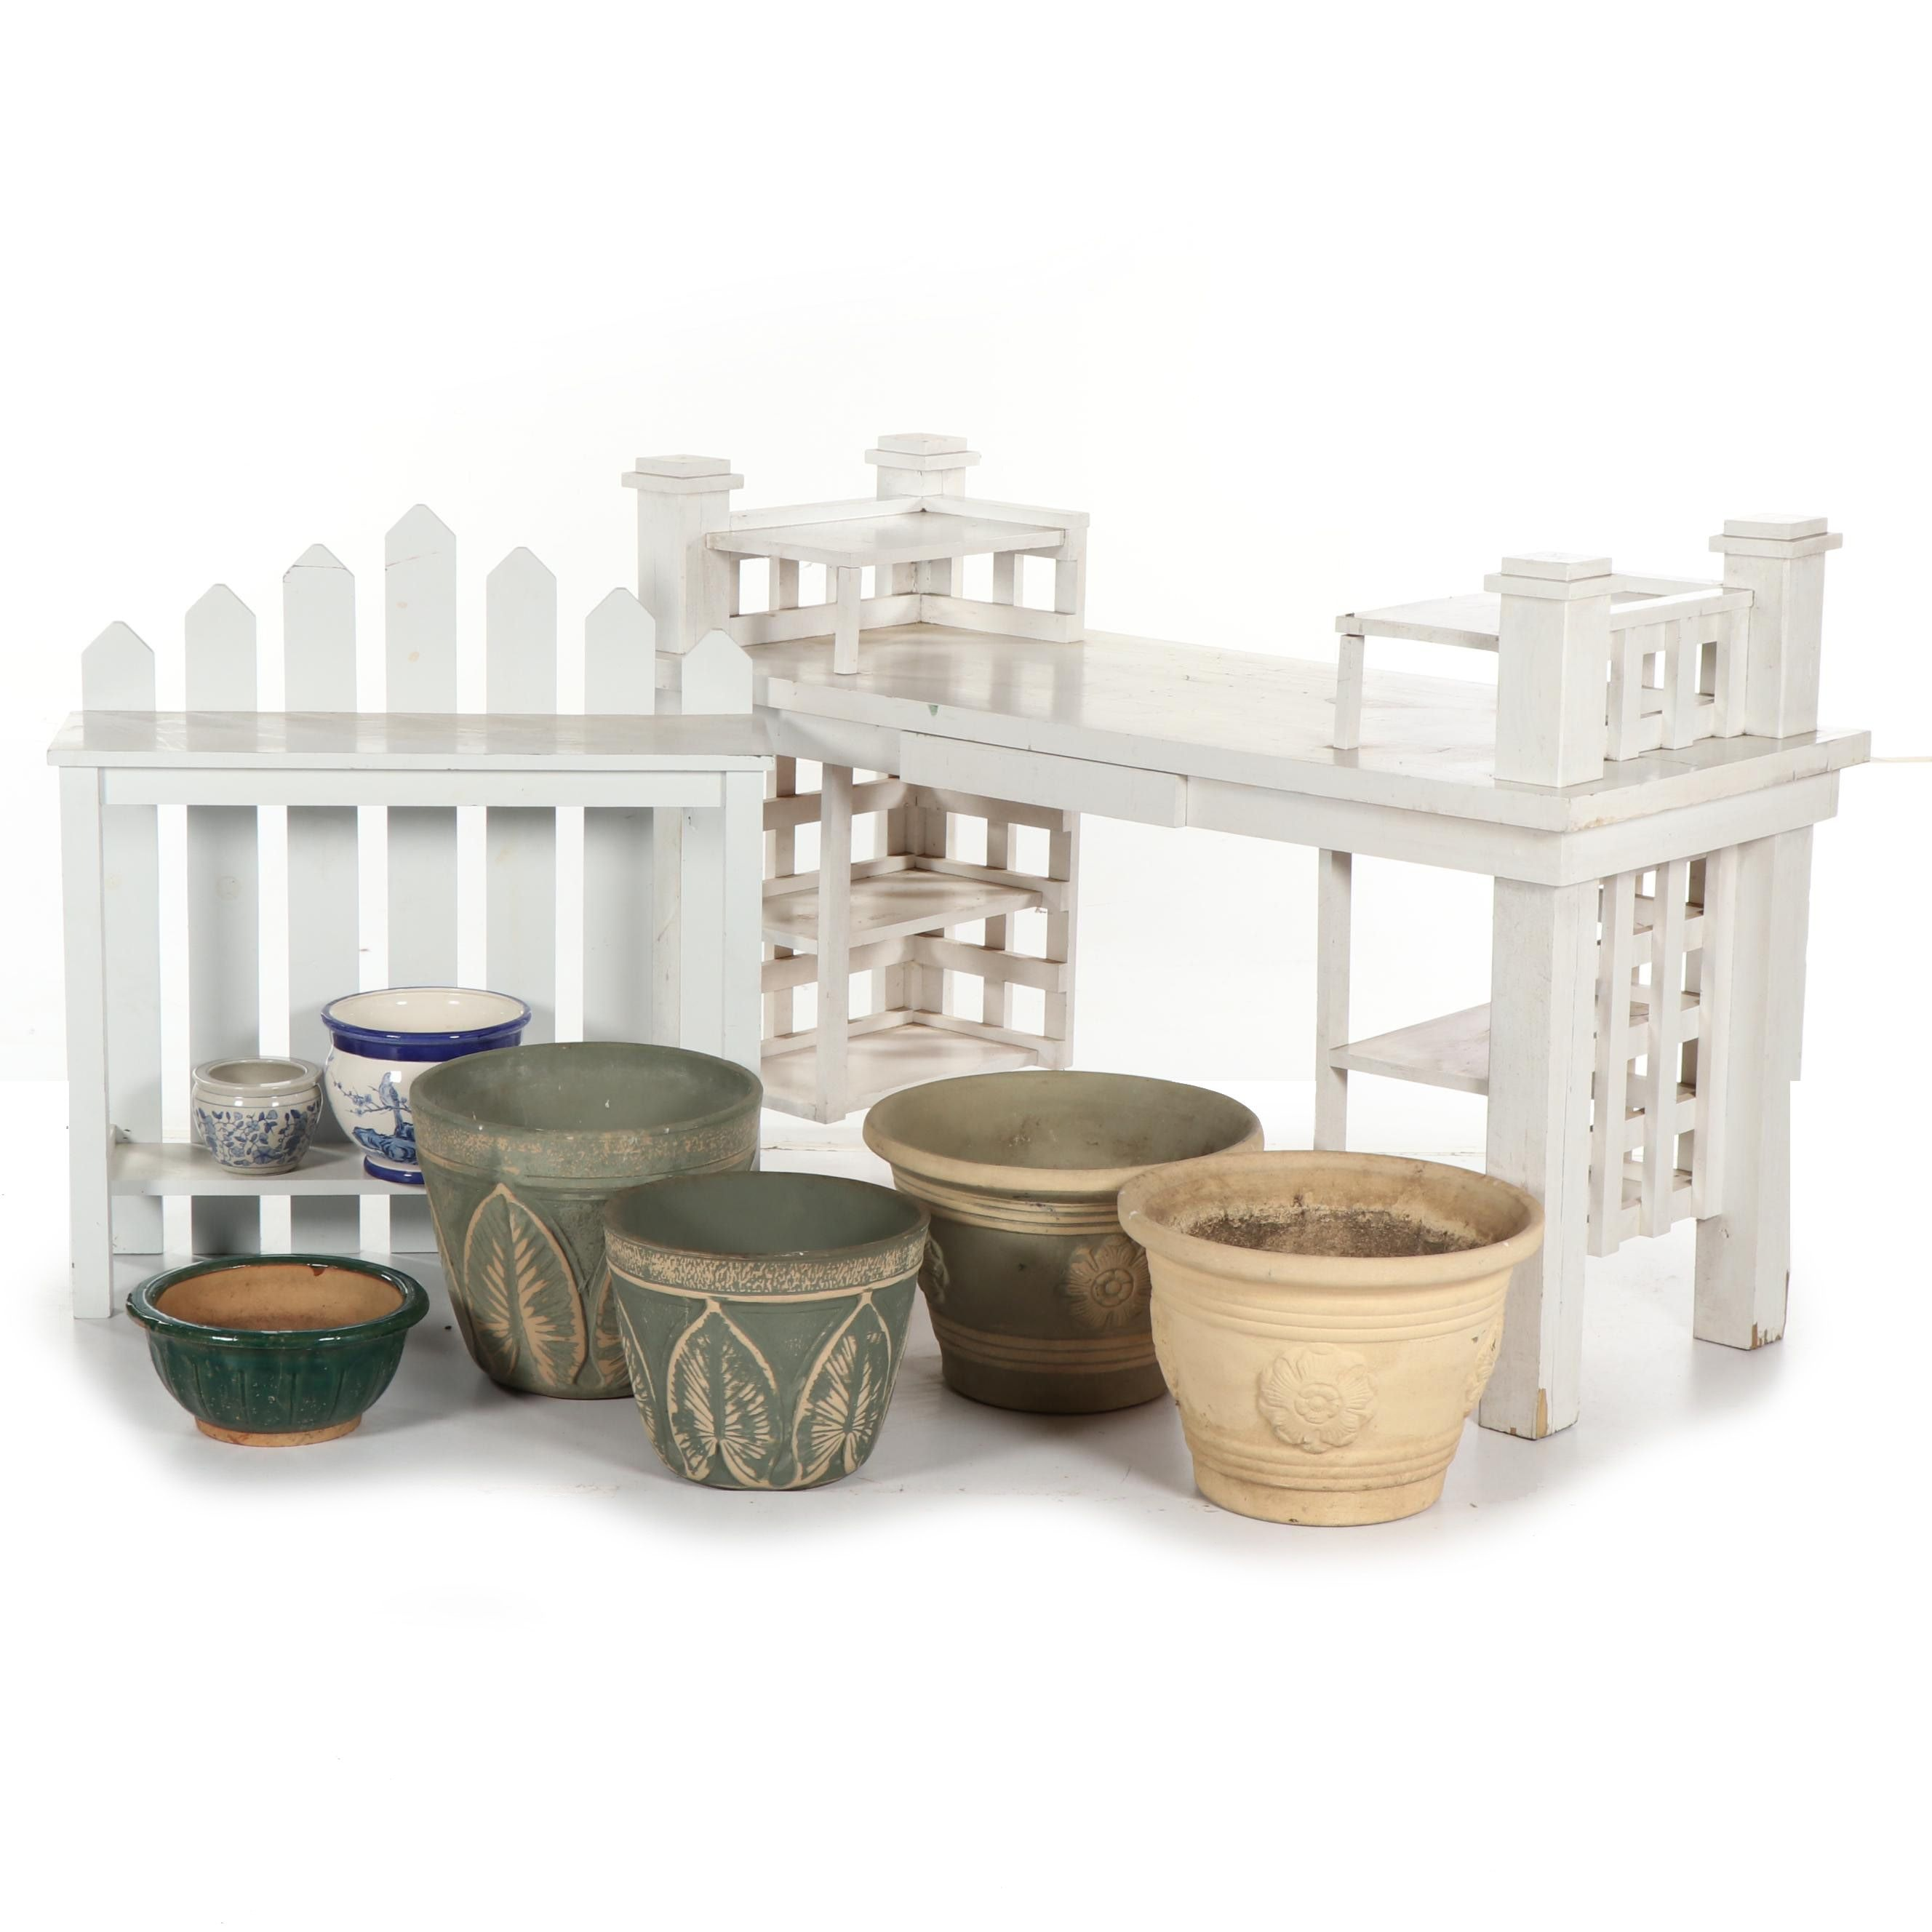 Painted Wood Potting Benches with Planters featuring Flutter the Dovecotes